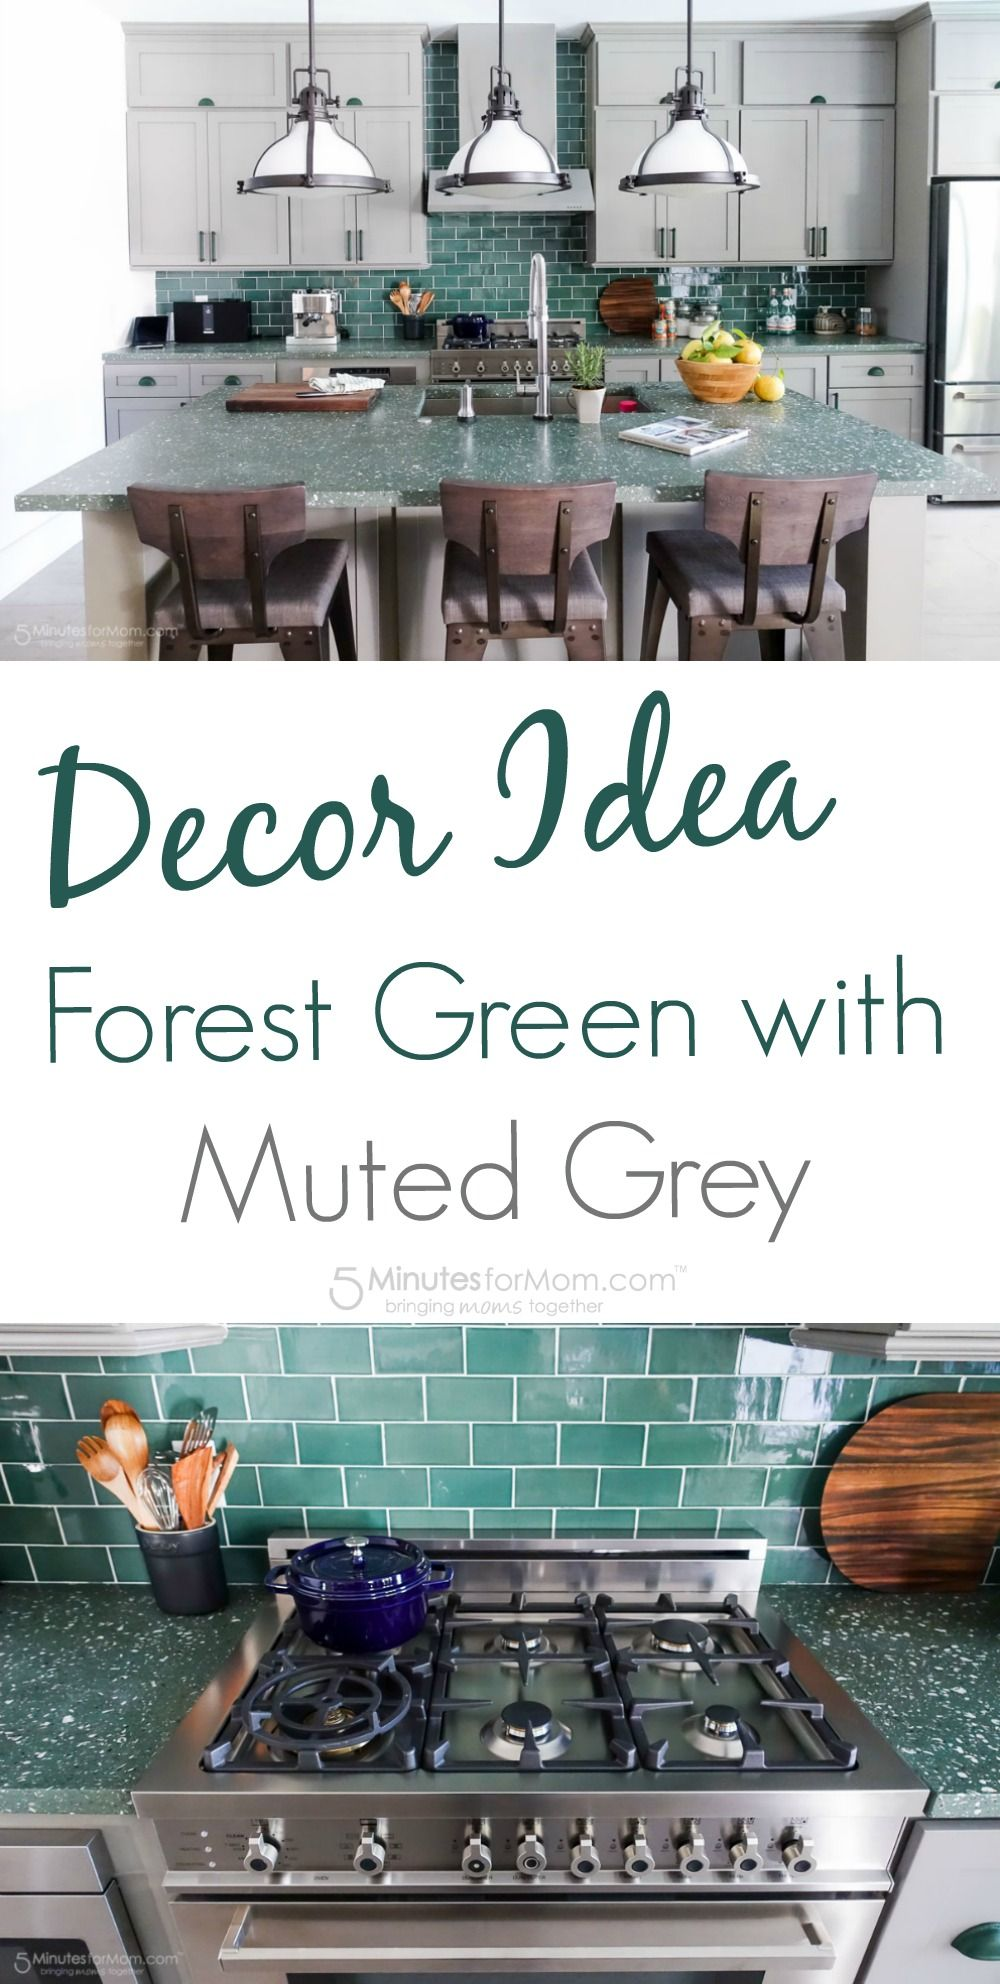 Decor Idea Forest Green With Muted Grey Kitchen Subway Tile Accents On The Cabinets And Countertops Made Concrete Shells